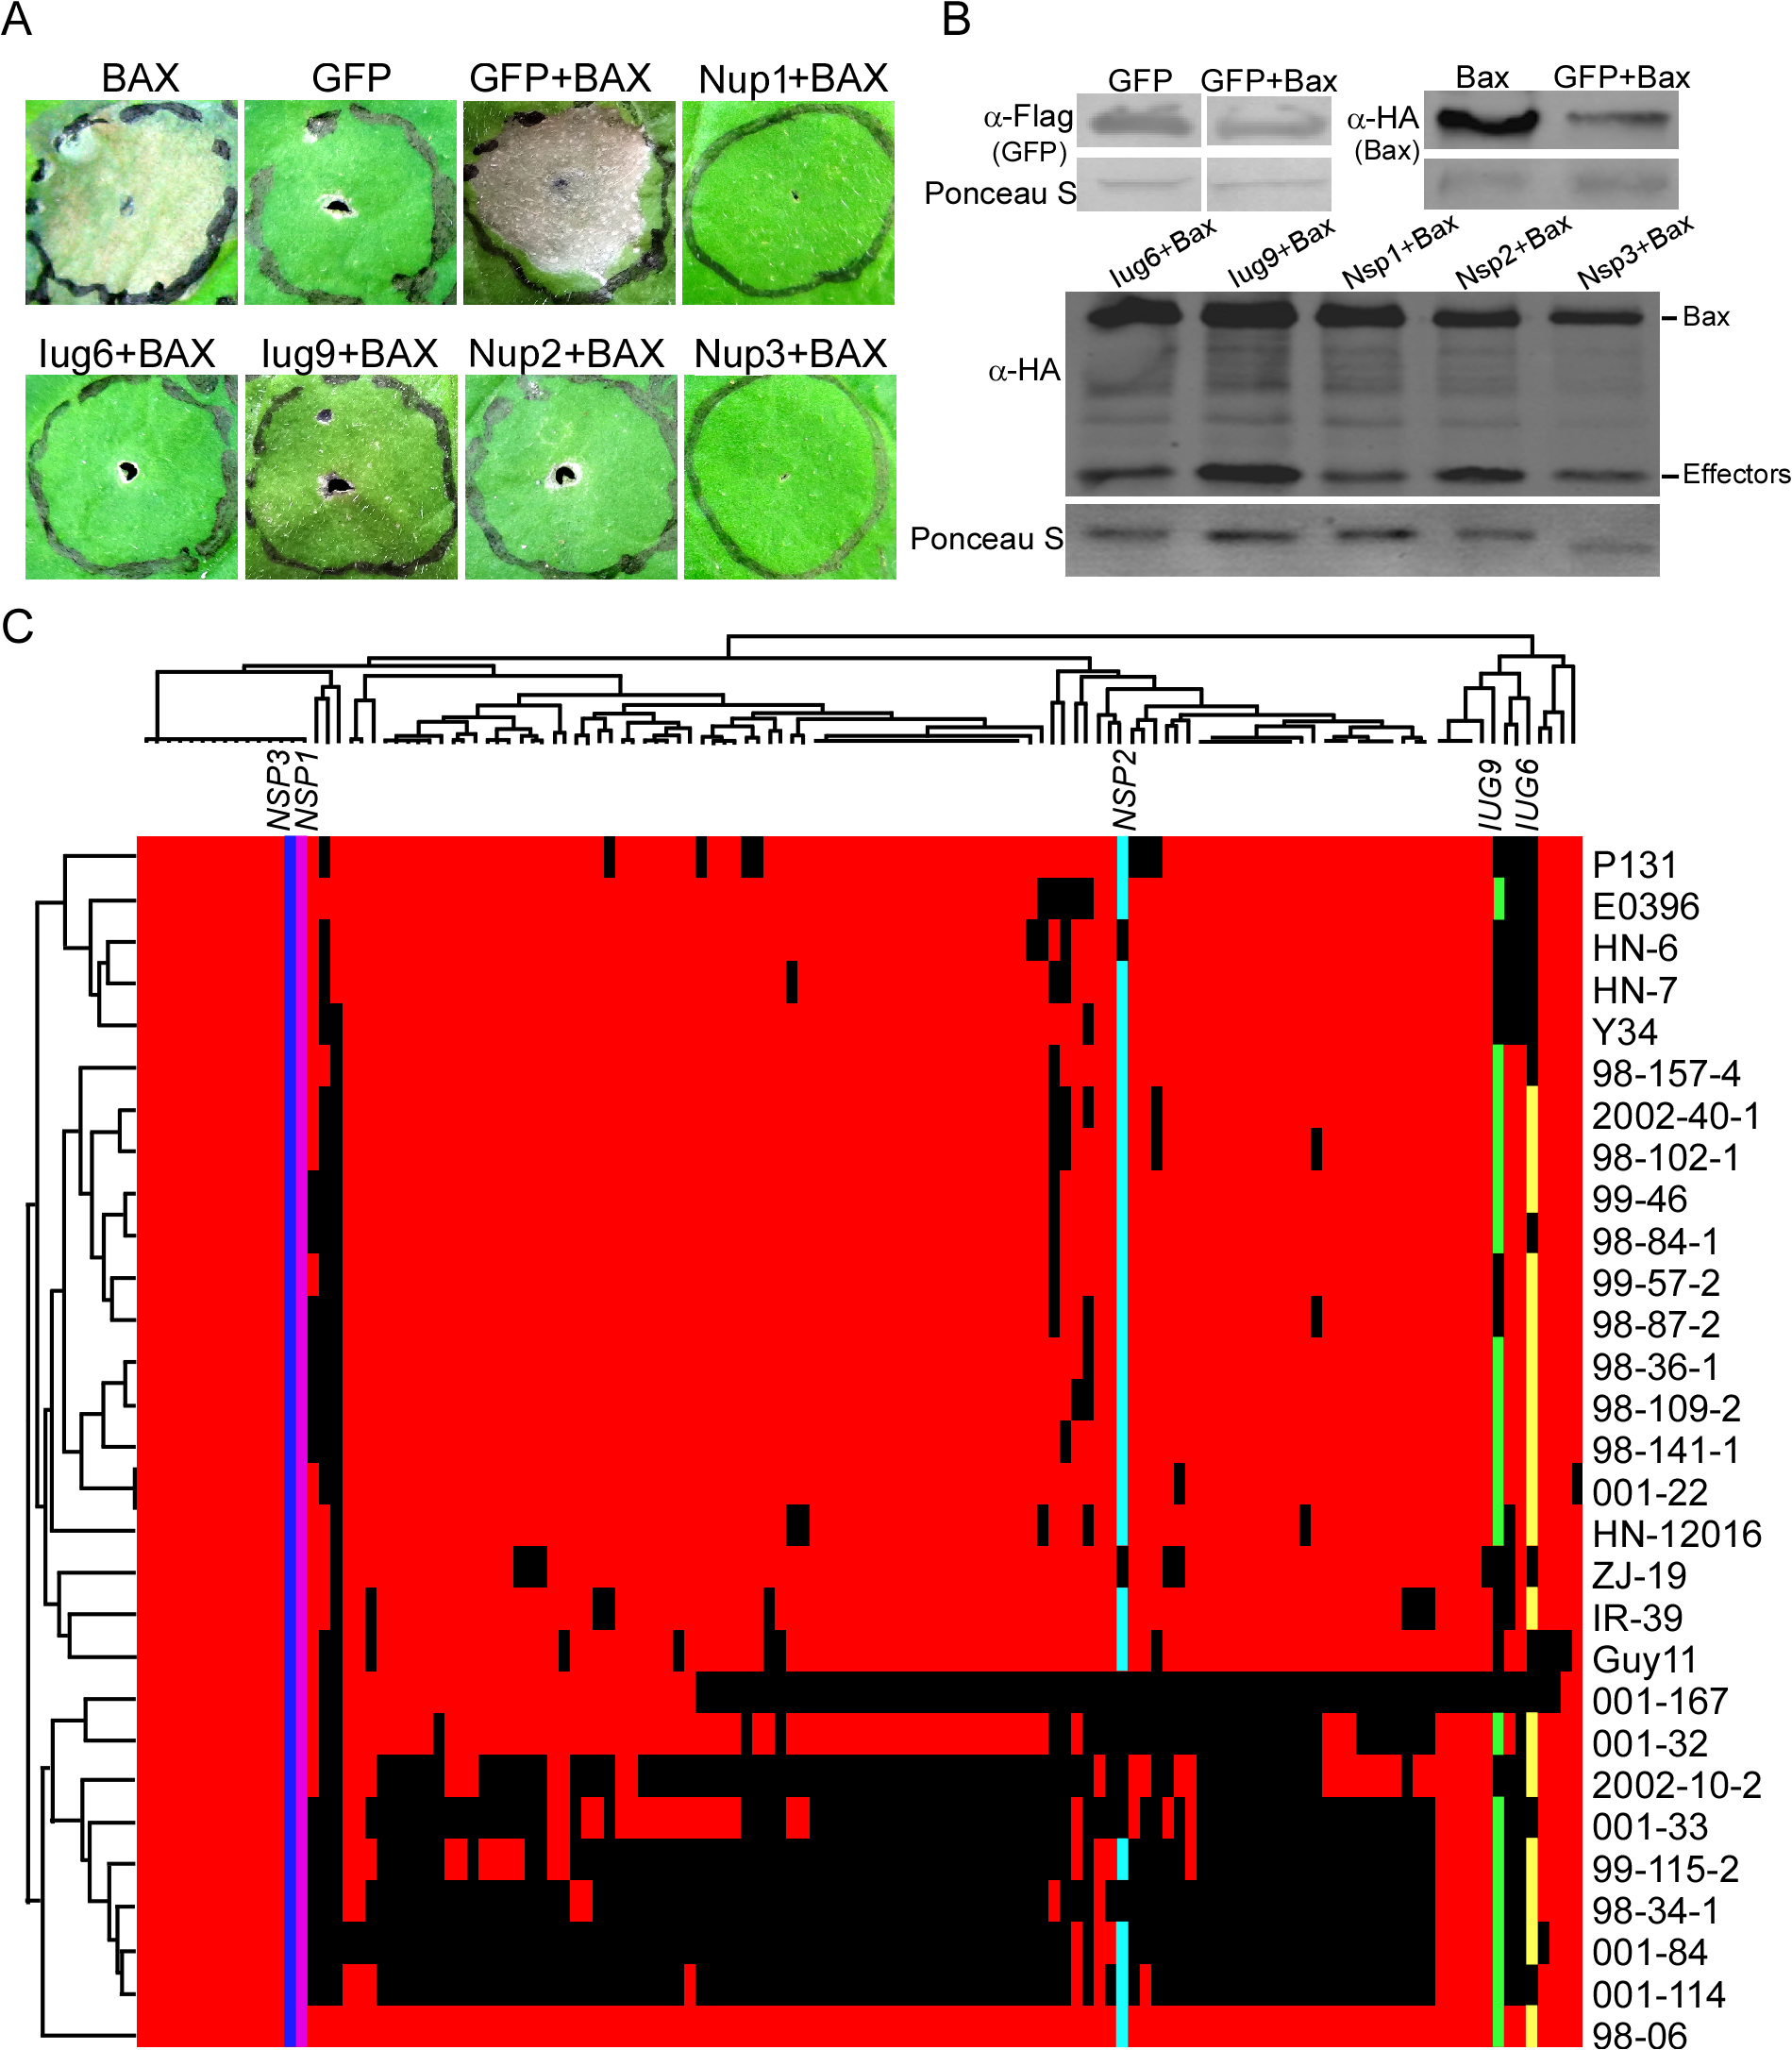 Iug6, Iug9, Nup1, Nup2, and Nup3 suppress the cell death triggered by BAX.